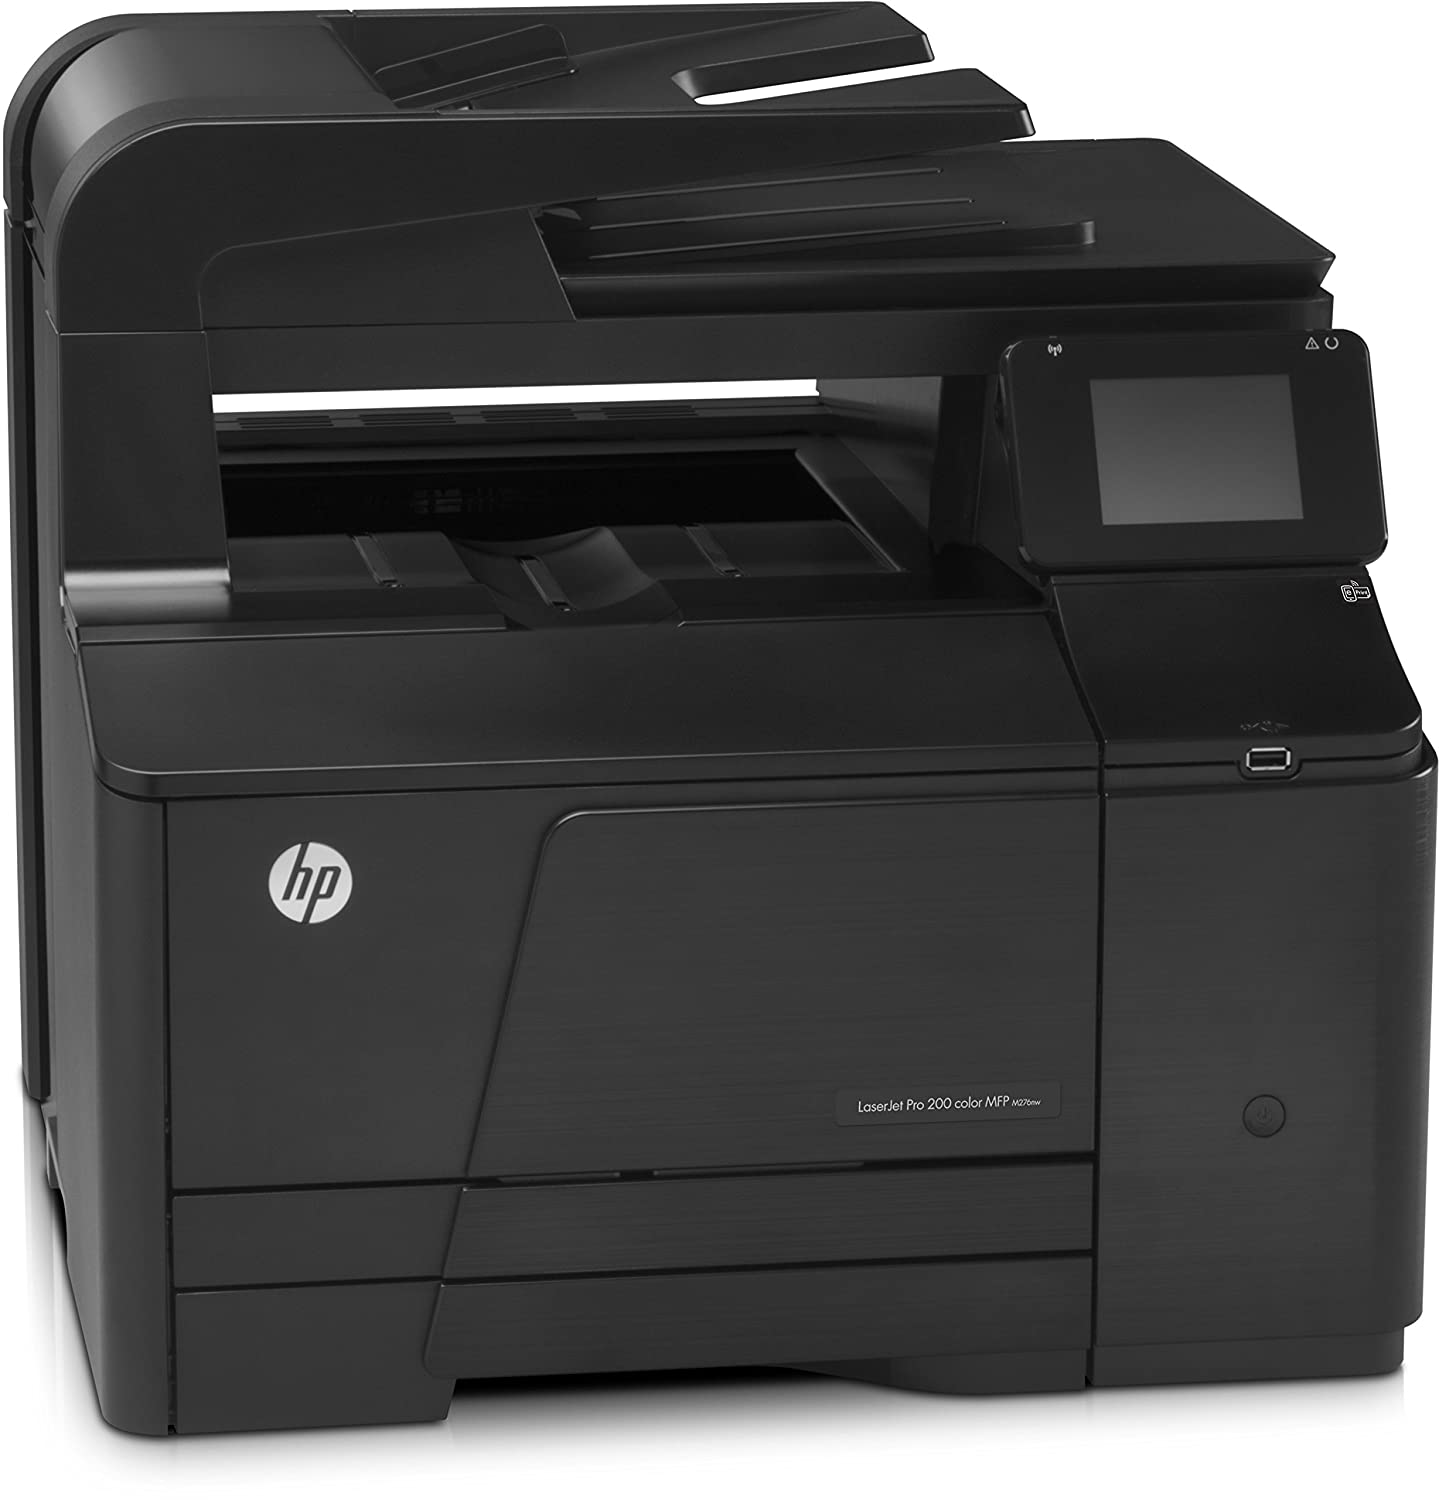 HP LASERJET 200 COLOR MFP M276NW DRIVER FREE